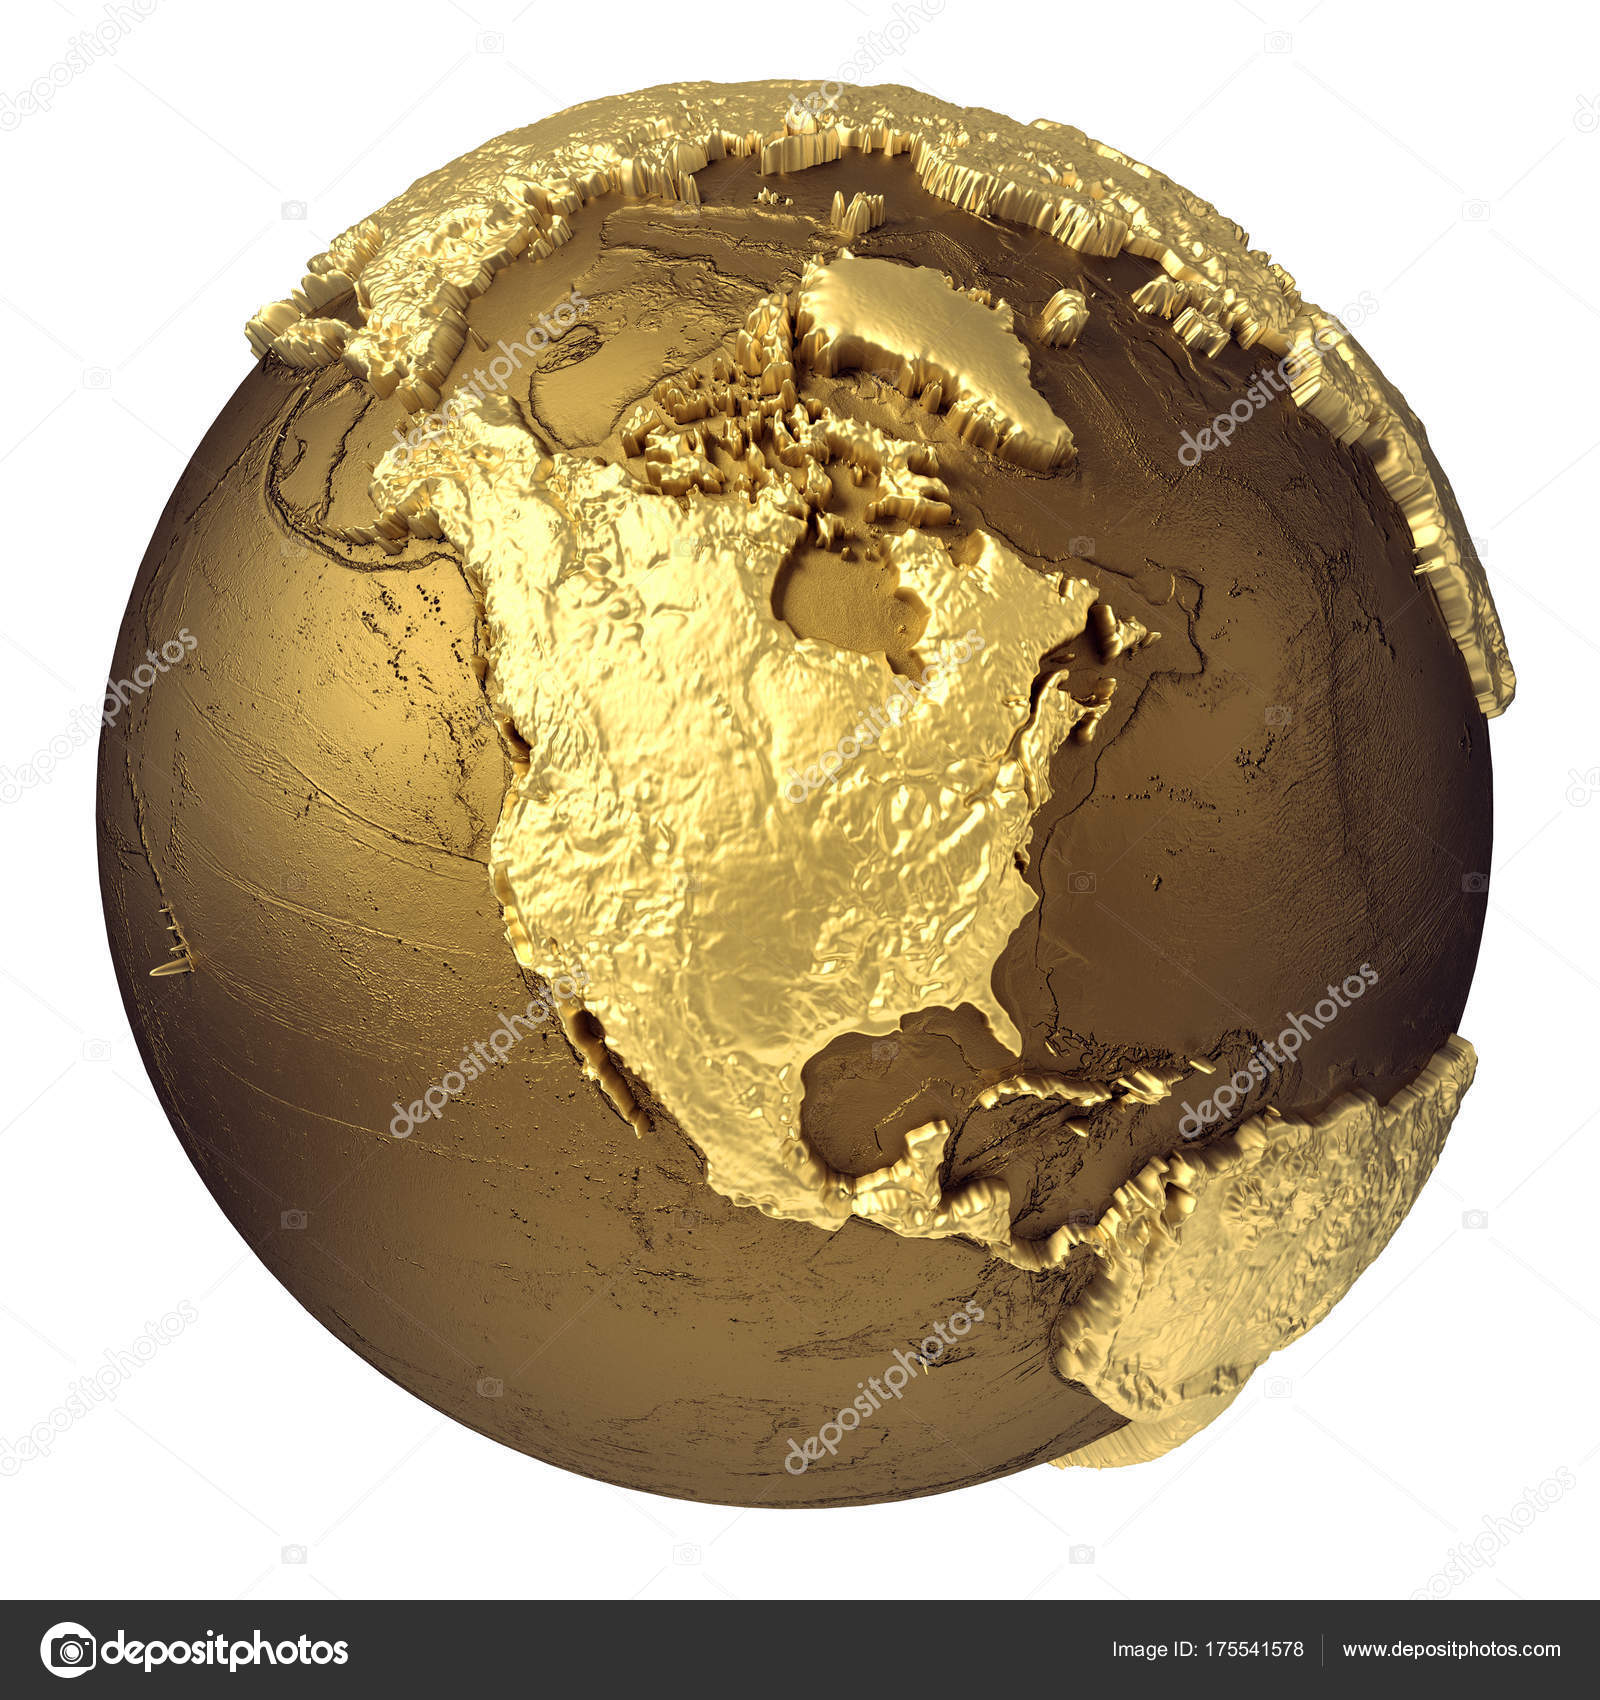 Gold globe north americ stock photo threeart 175541578 golden globe model without water north america 3d rendering isolated on white background elements of this image furnished by nas photo by threeart publicscrutiny Choice Image